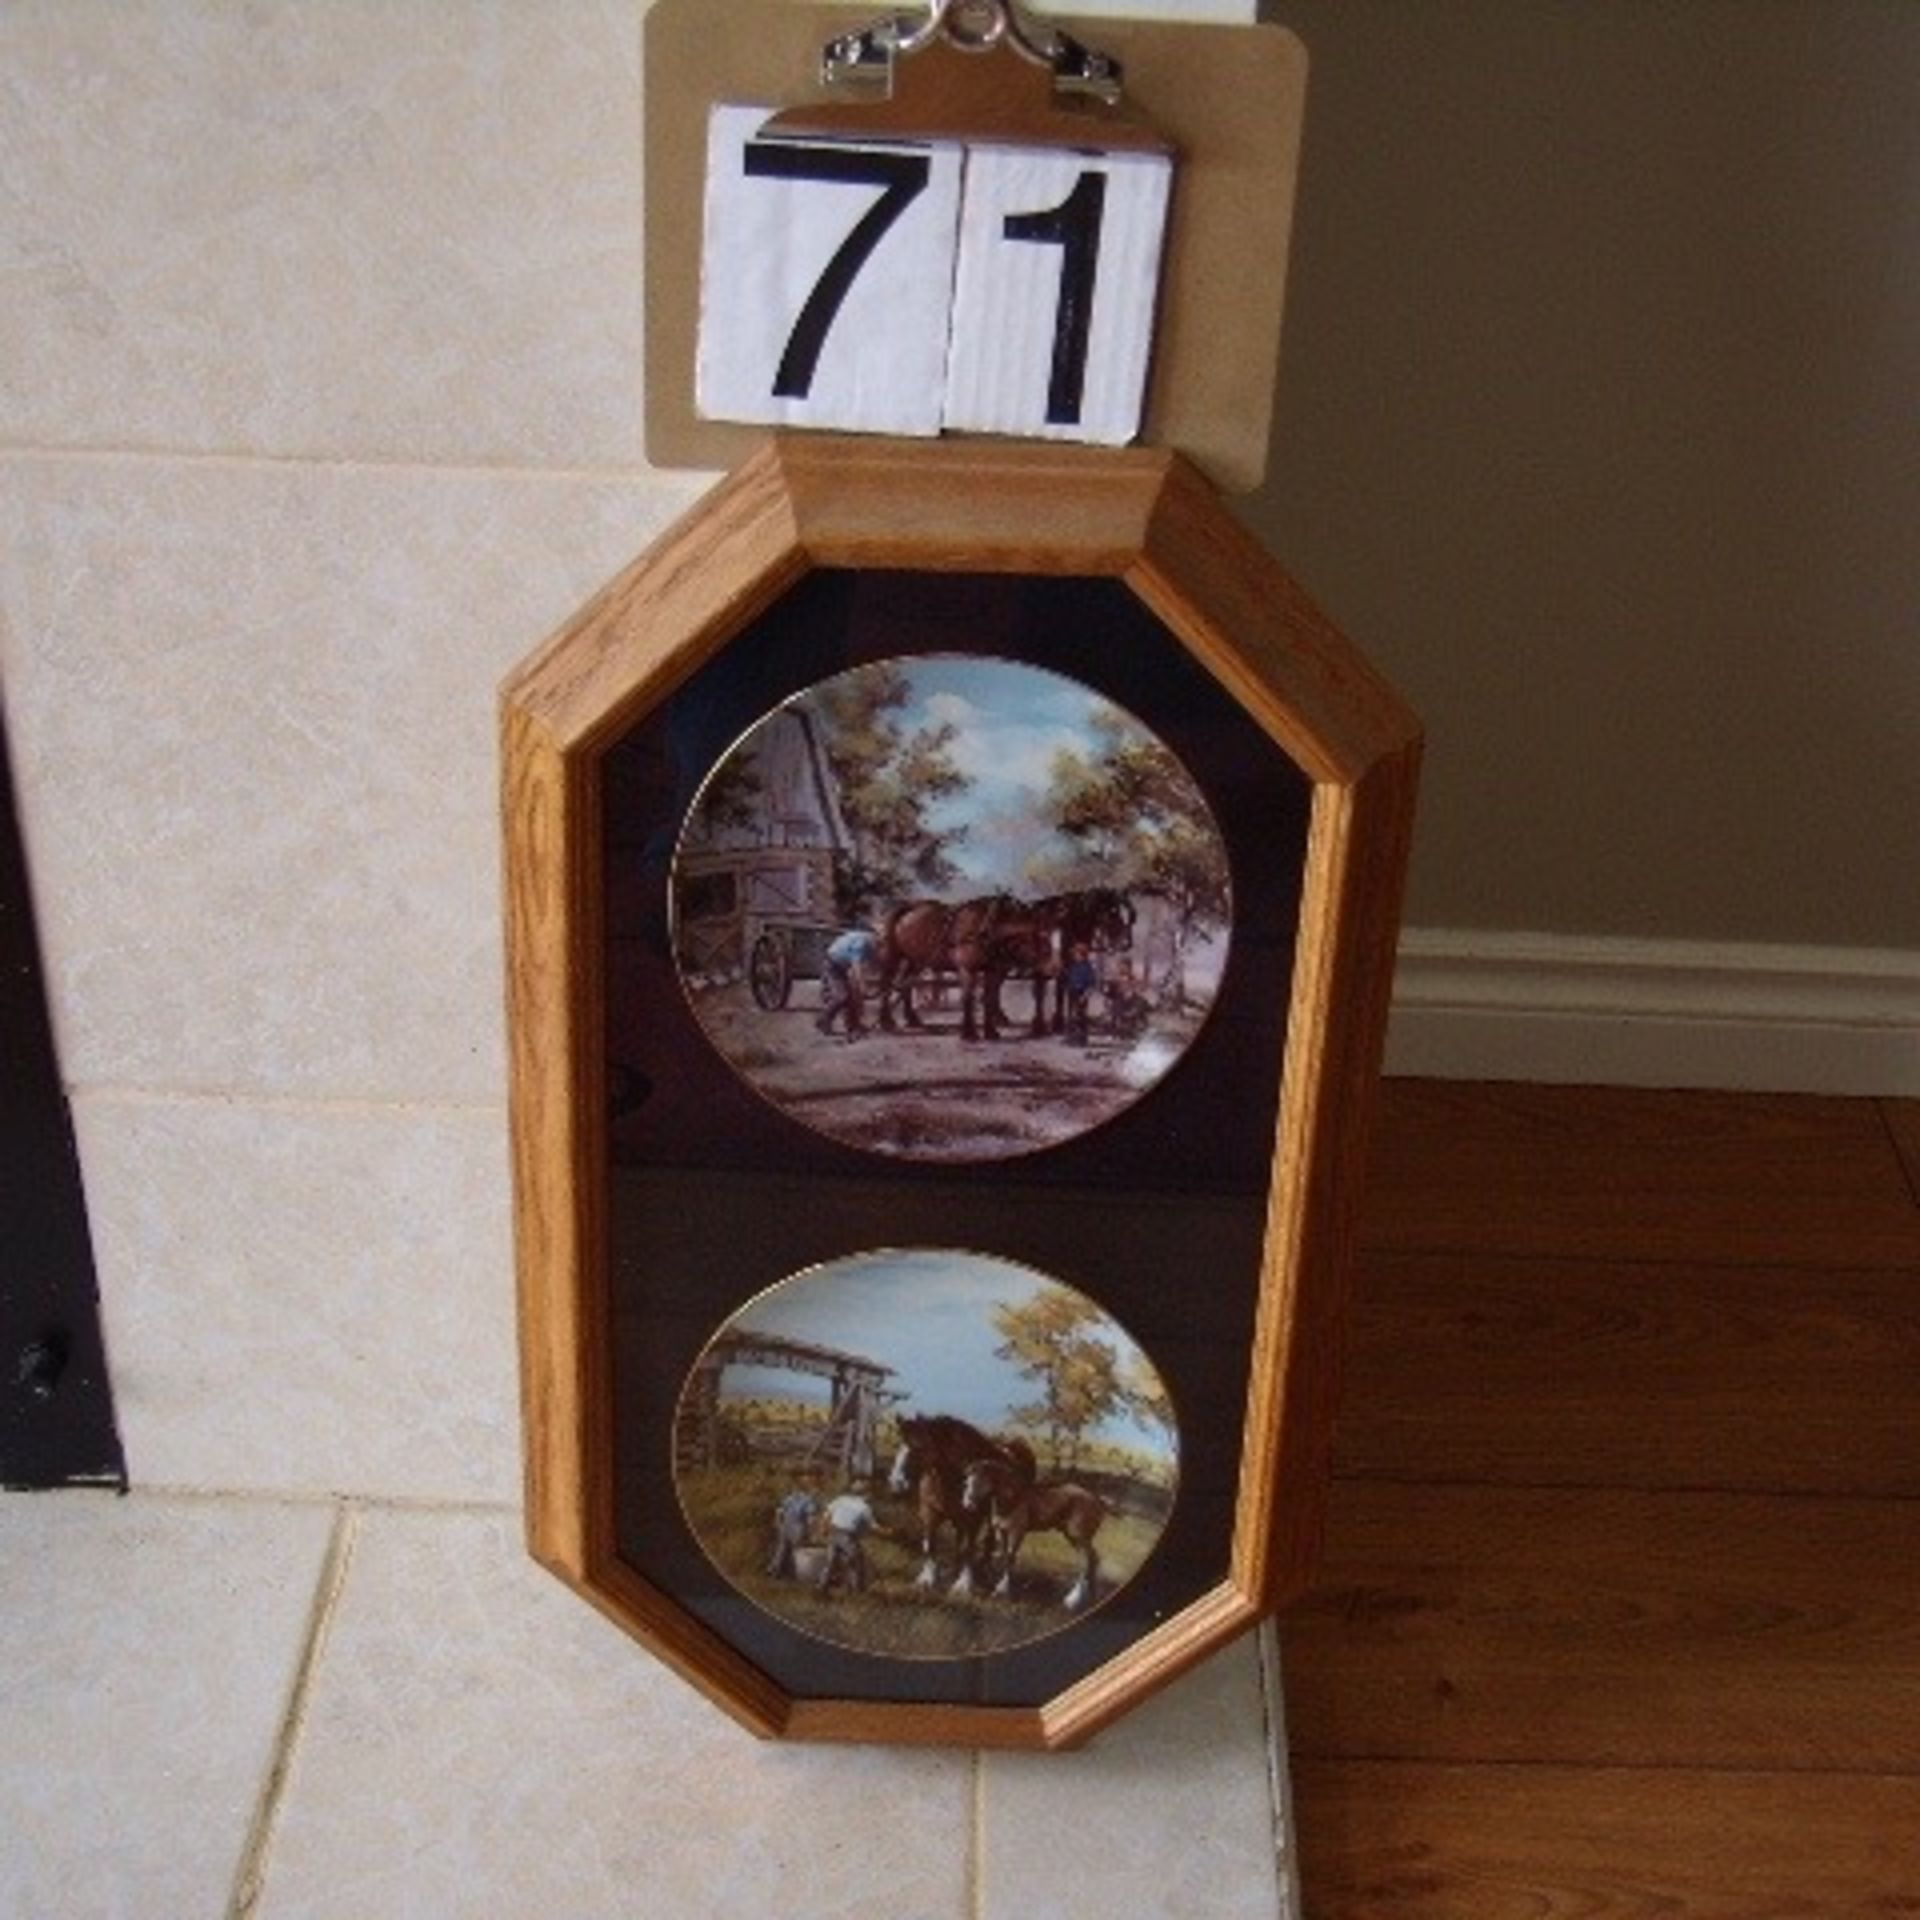 2 Georgia Jarvis Plates in frame -PROCEEDS TO STOLLERY HOSPITAL - Image 2 of 2